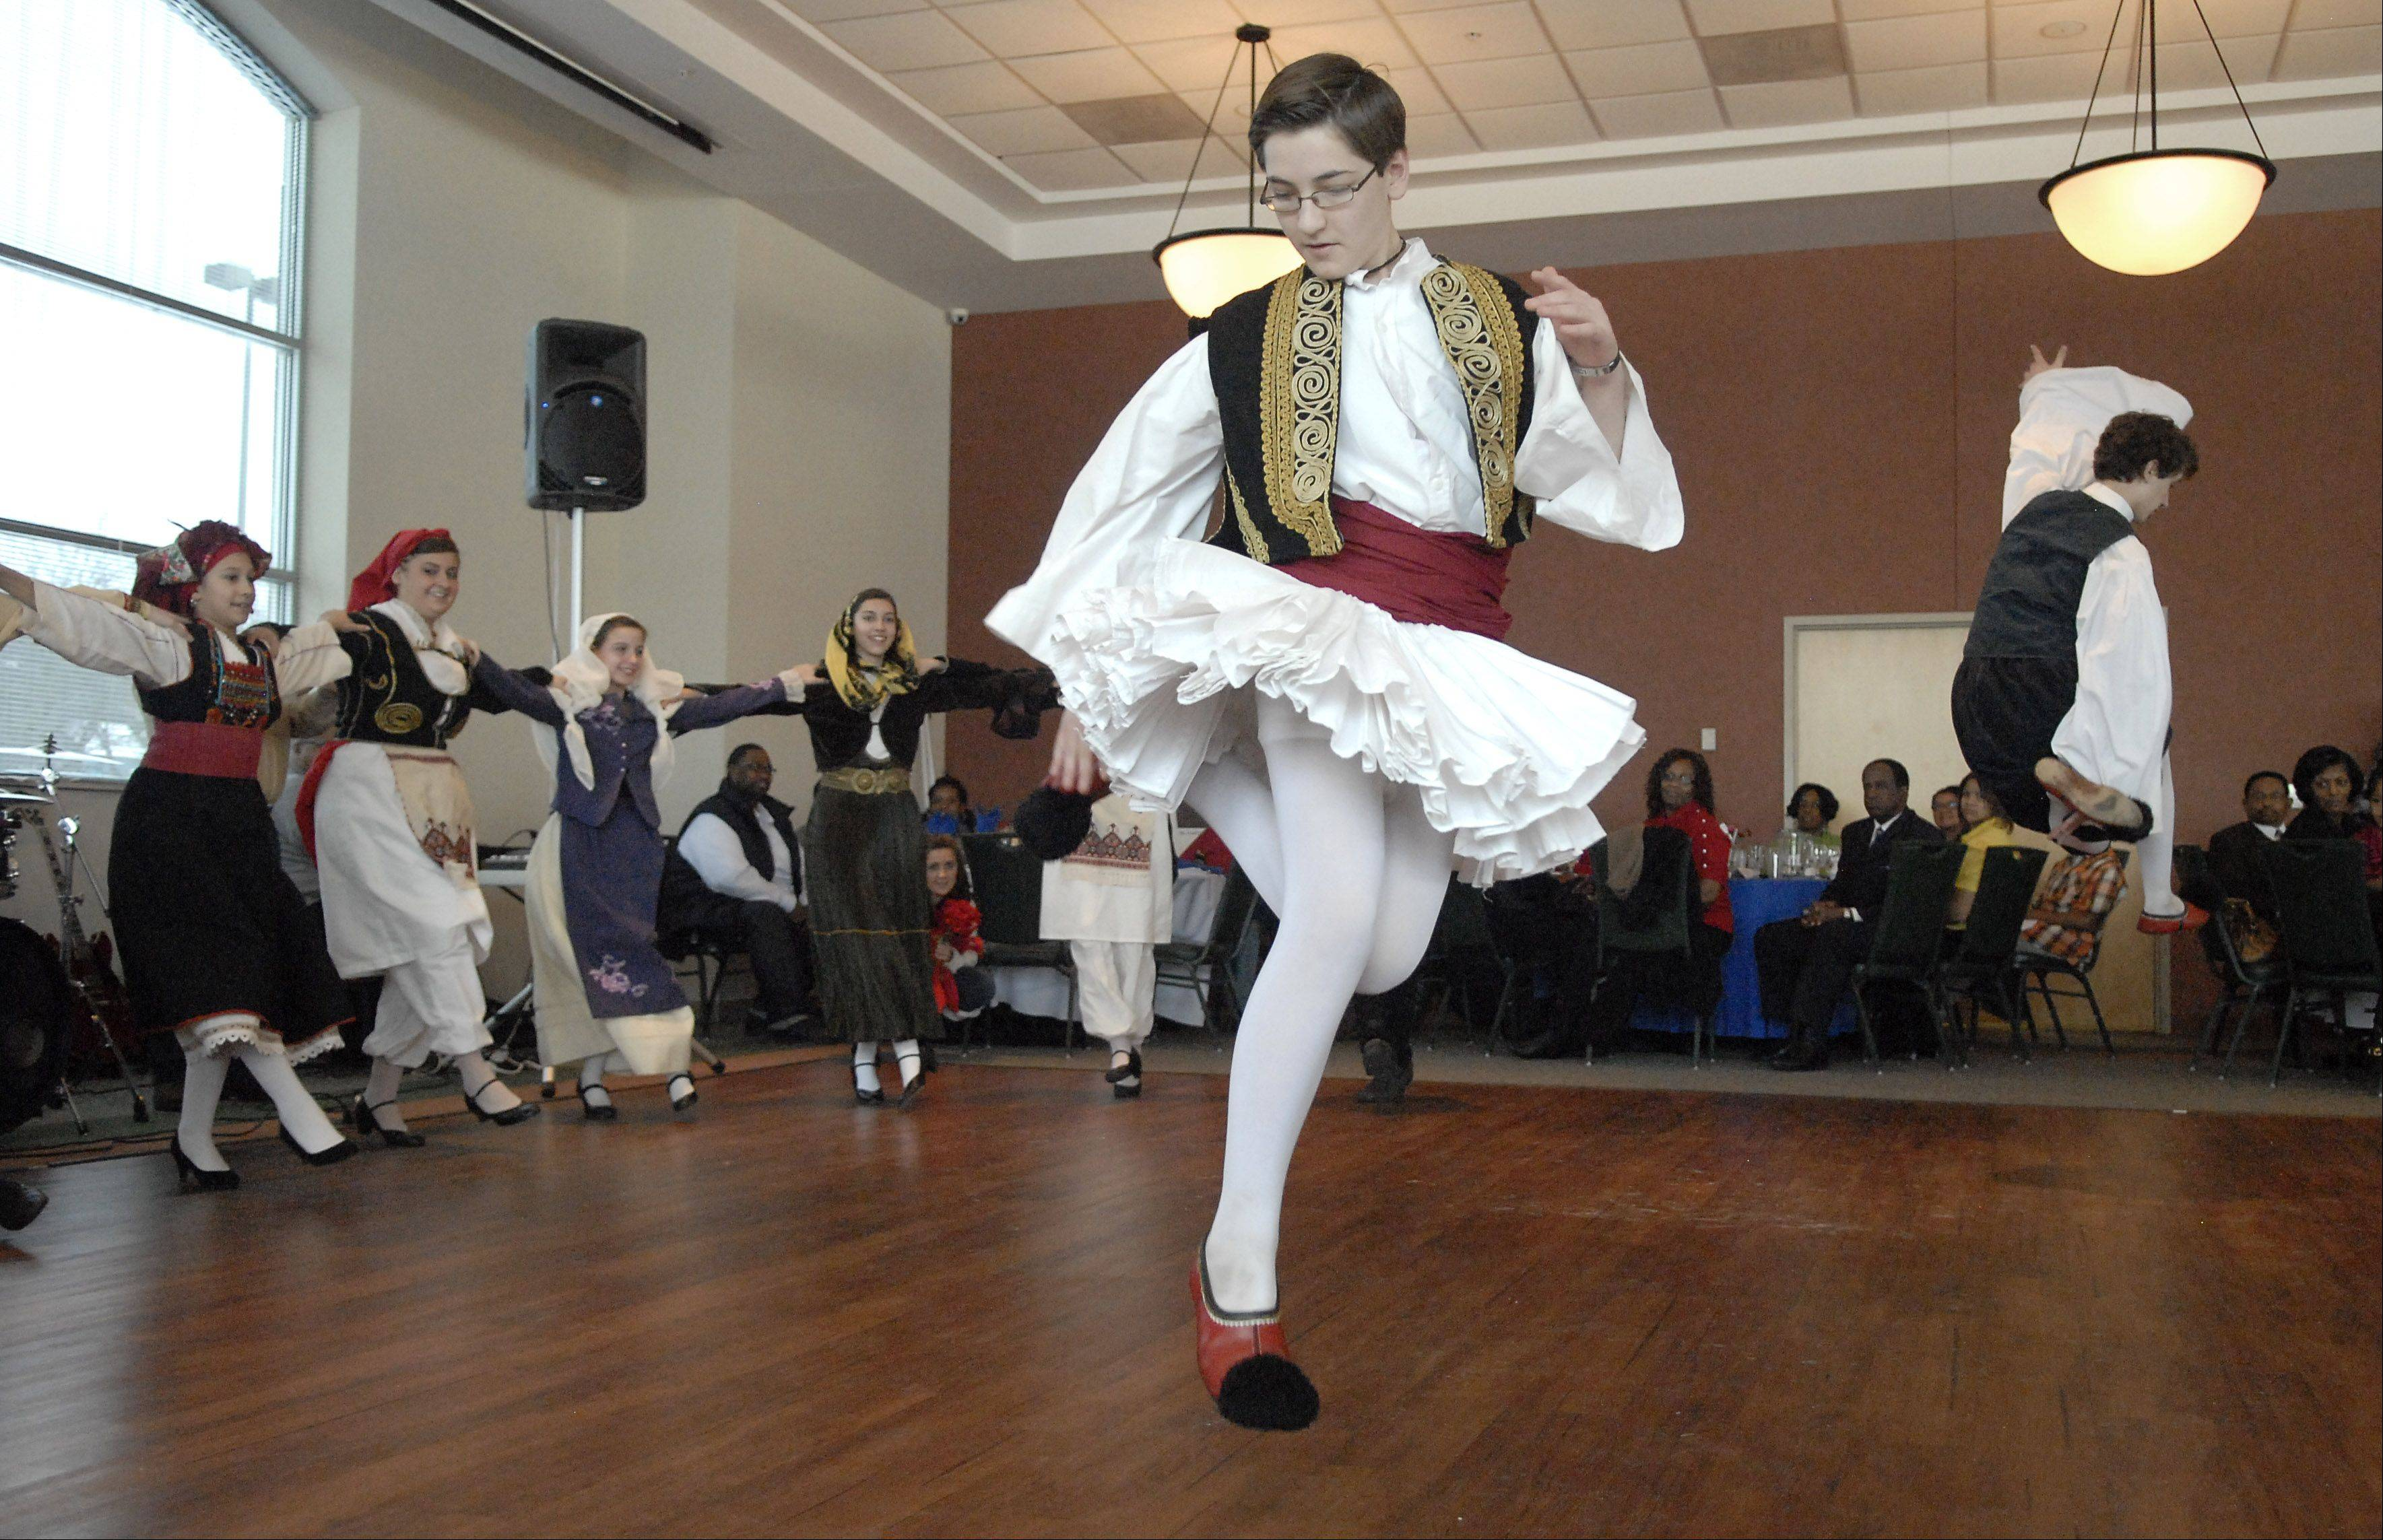 Alexander Bravos, 14, of St. Charles, left, and his brother, Thomas, 16, perform with The Agape Dance Troops at the 27th annual Dr. Martin Luther King, Jr., Prayer Breakfast in Elgin. The group, from St. Sophia Greek Orthodox Church in Elgin, was invited to perform at the event.